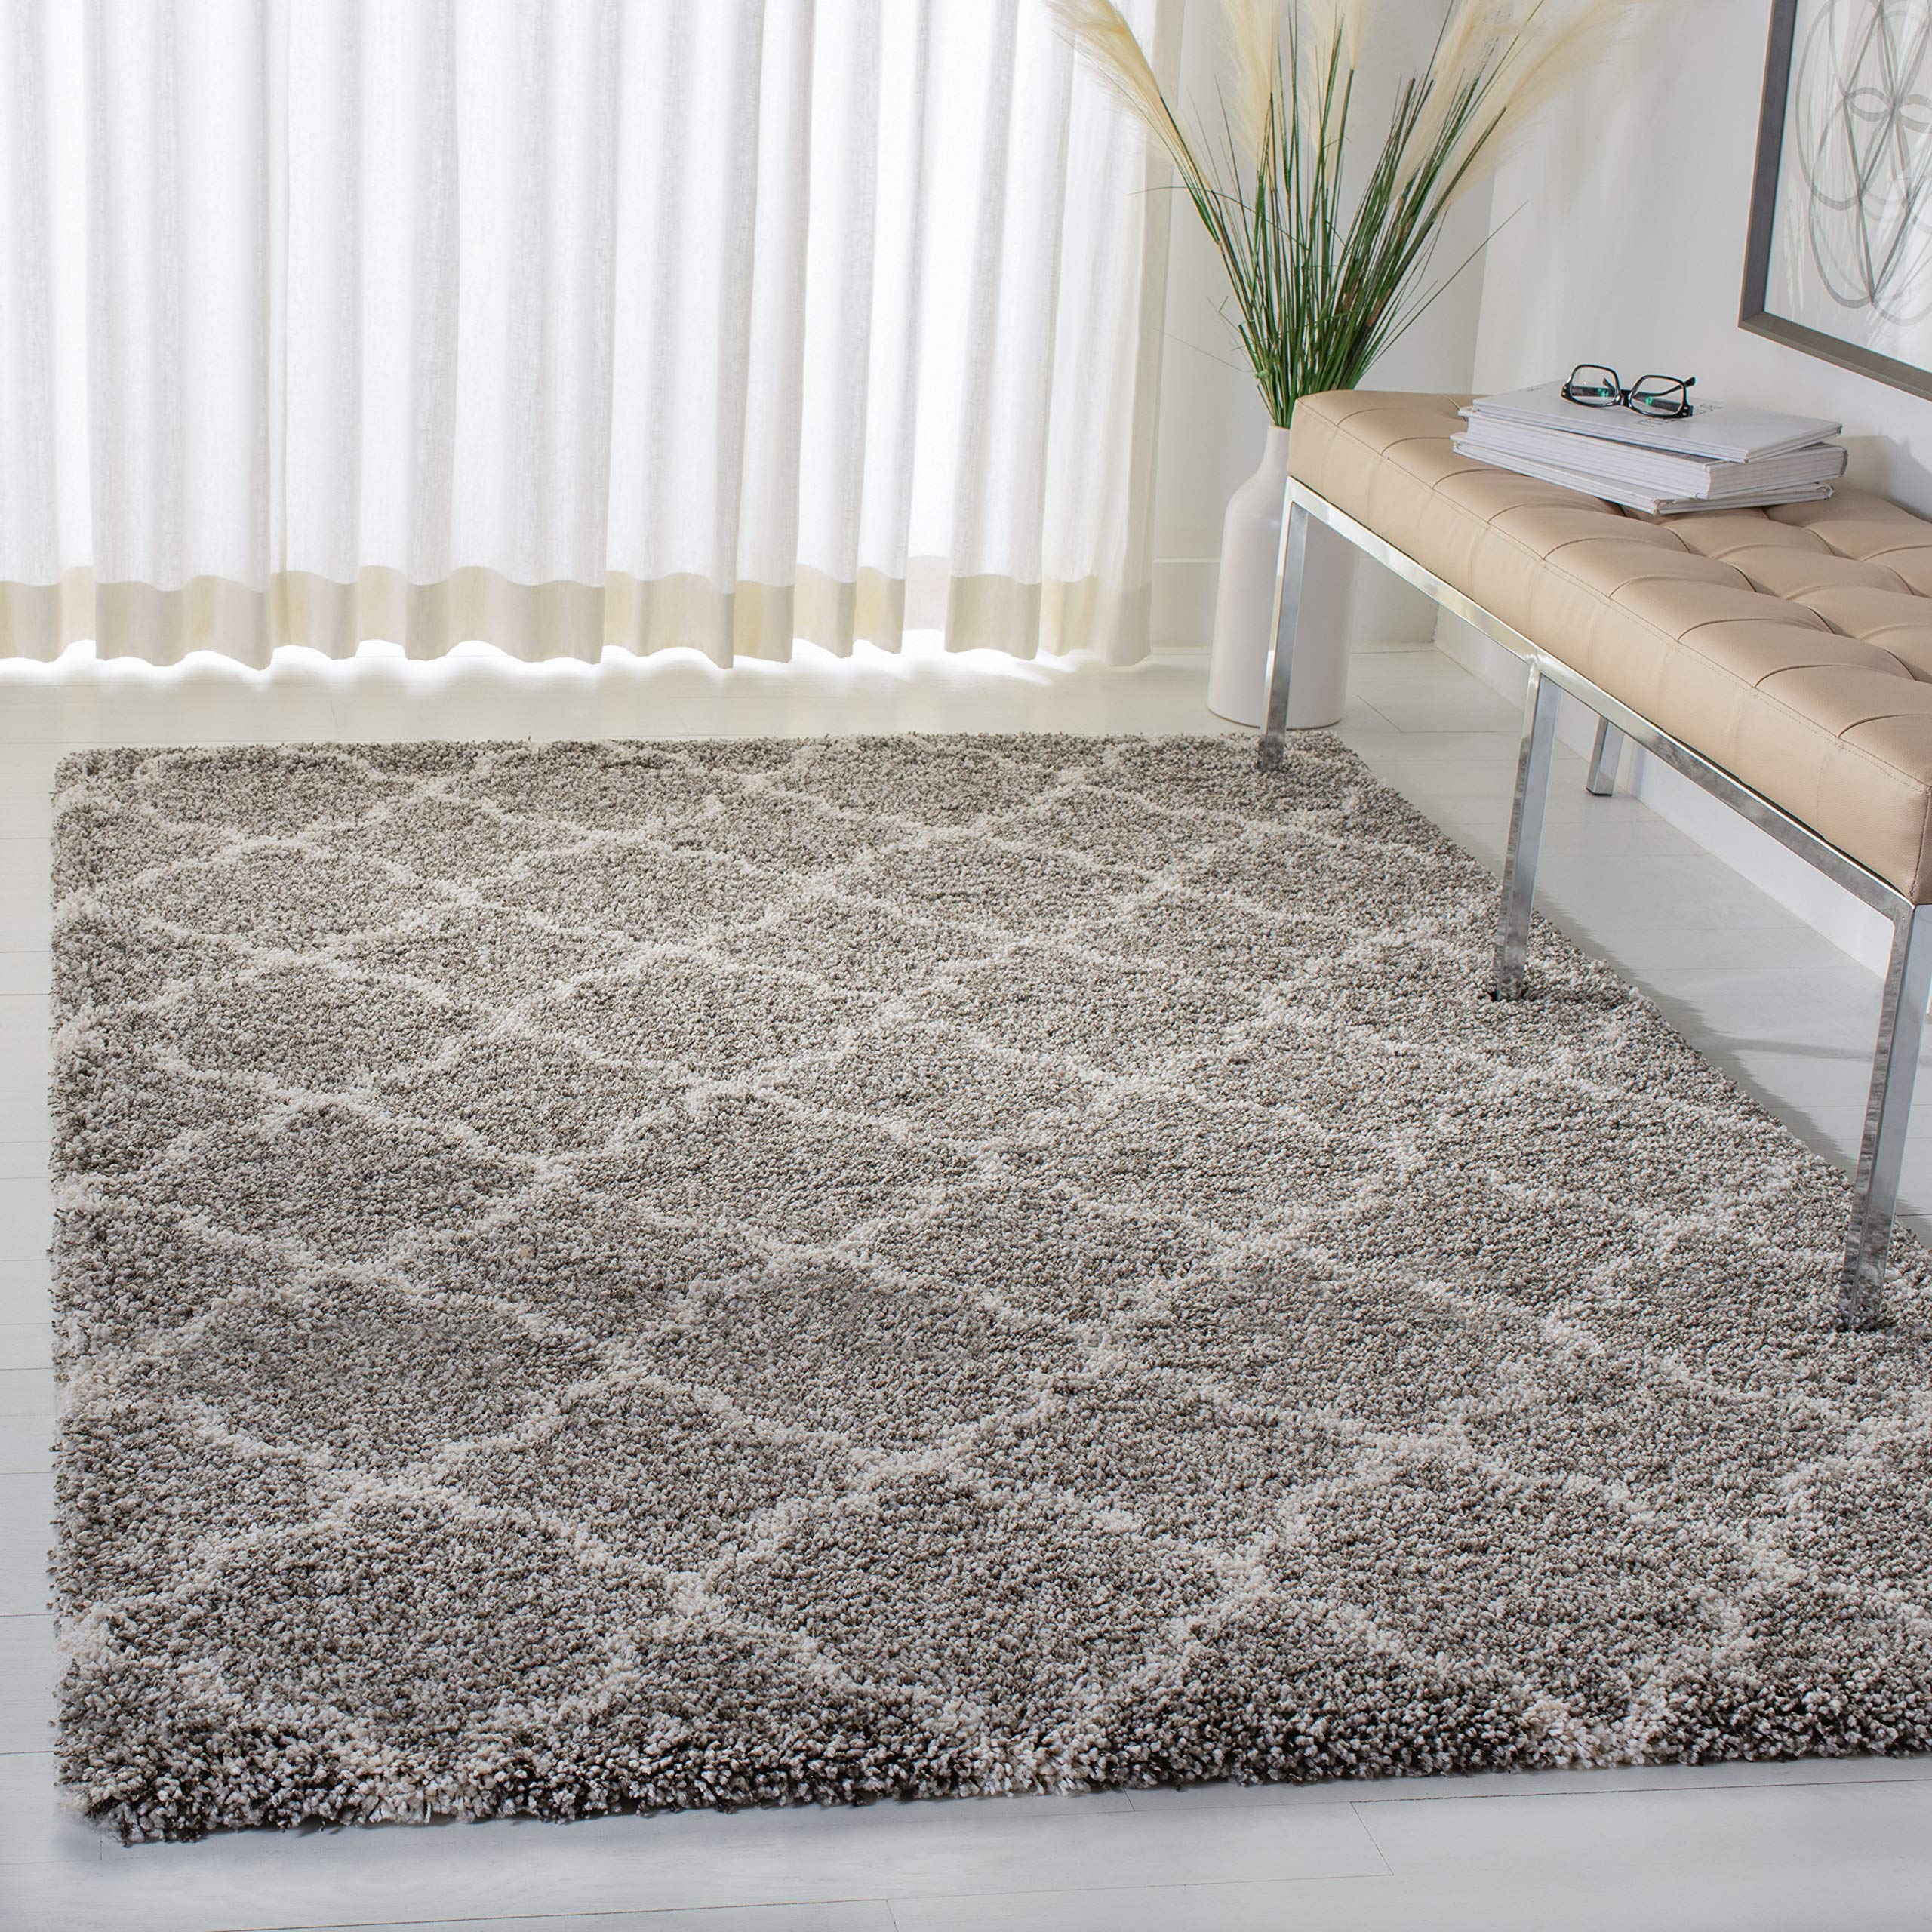 Best Rated in Area Rugs & Helpful Customer Reviews - Amazon.com